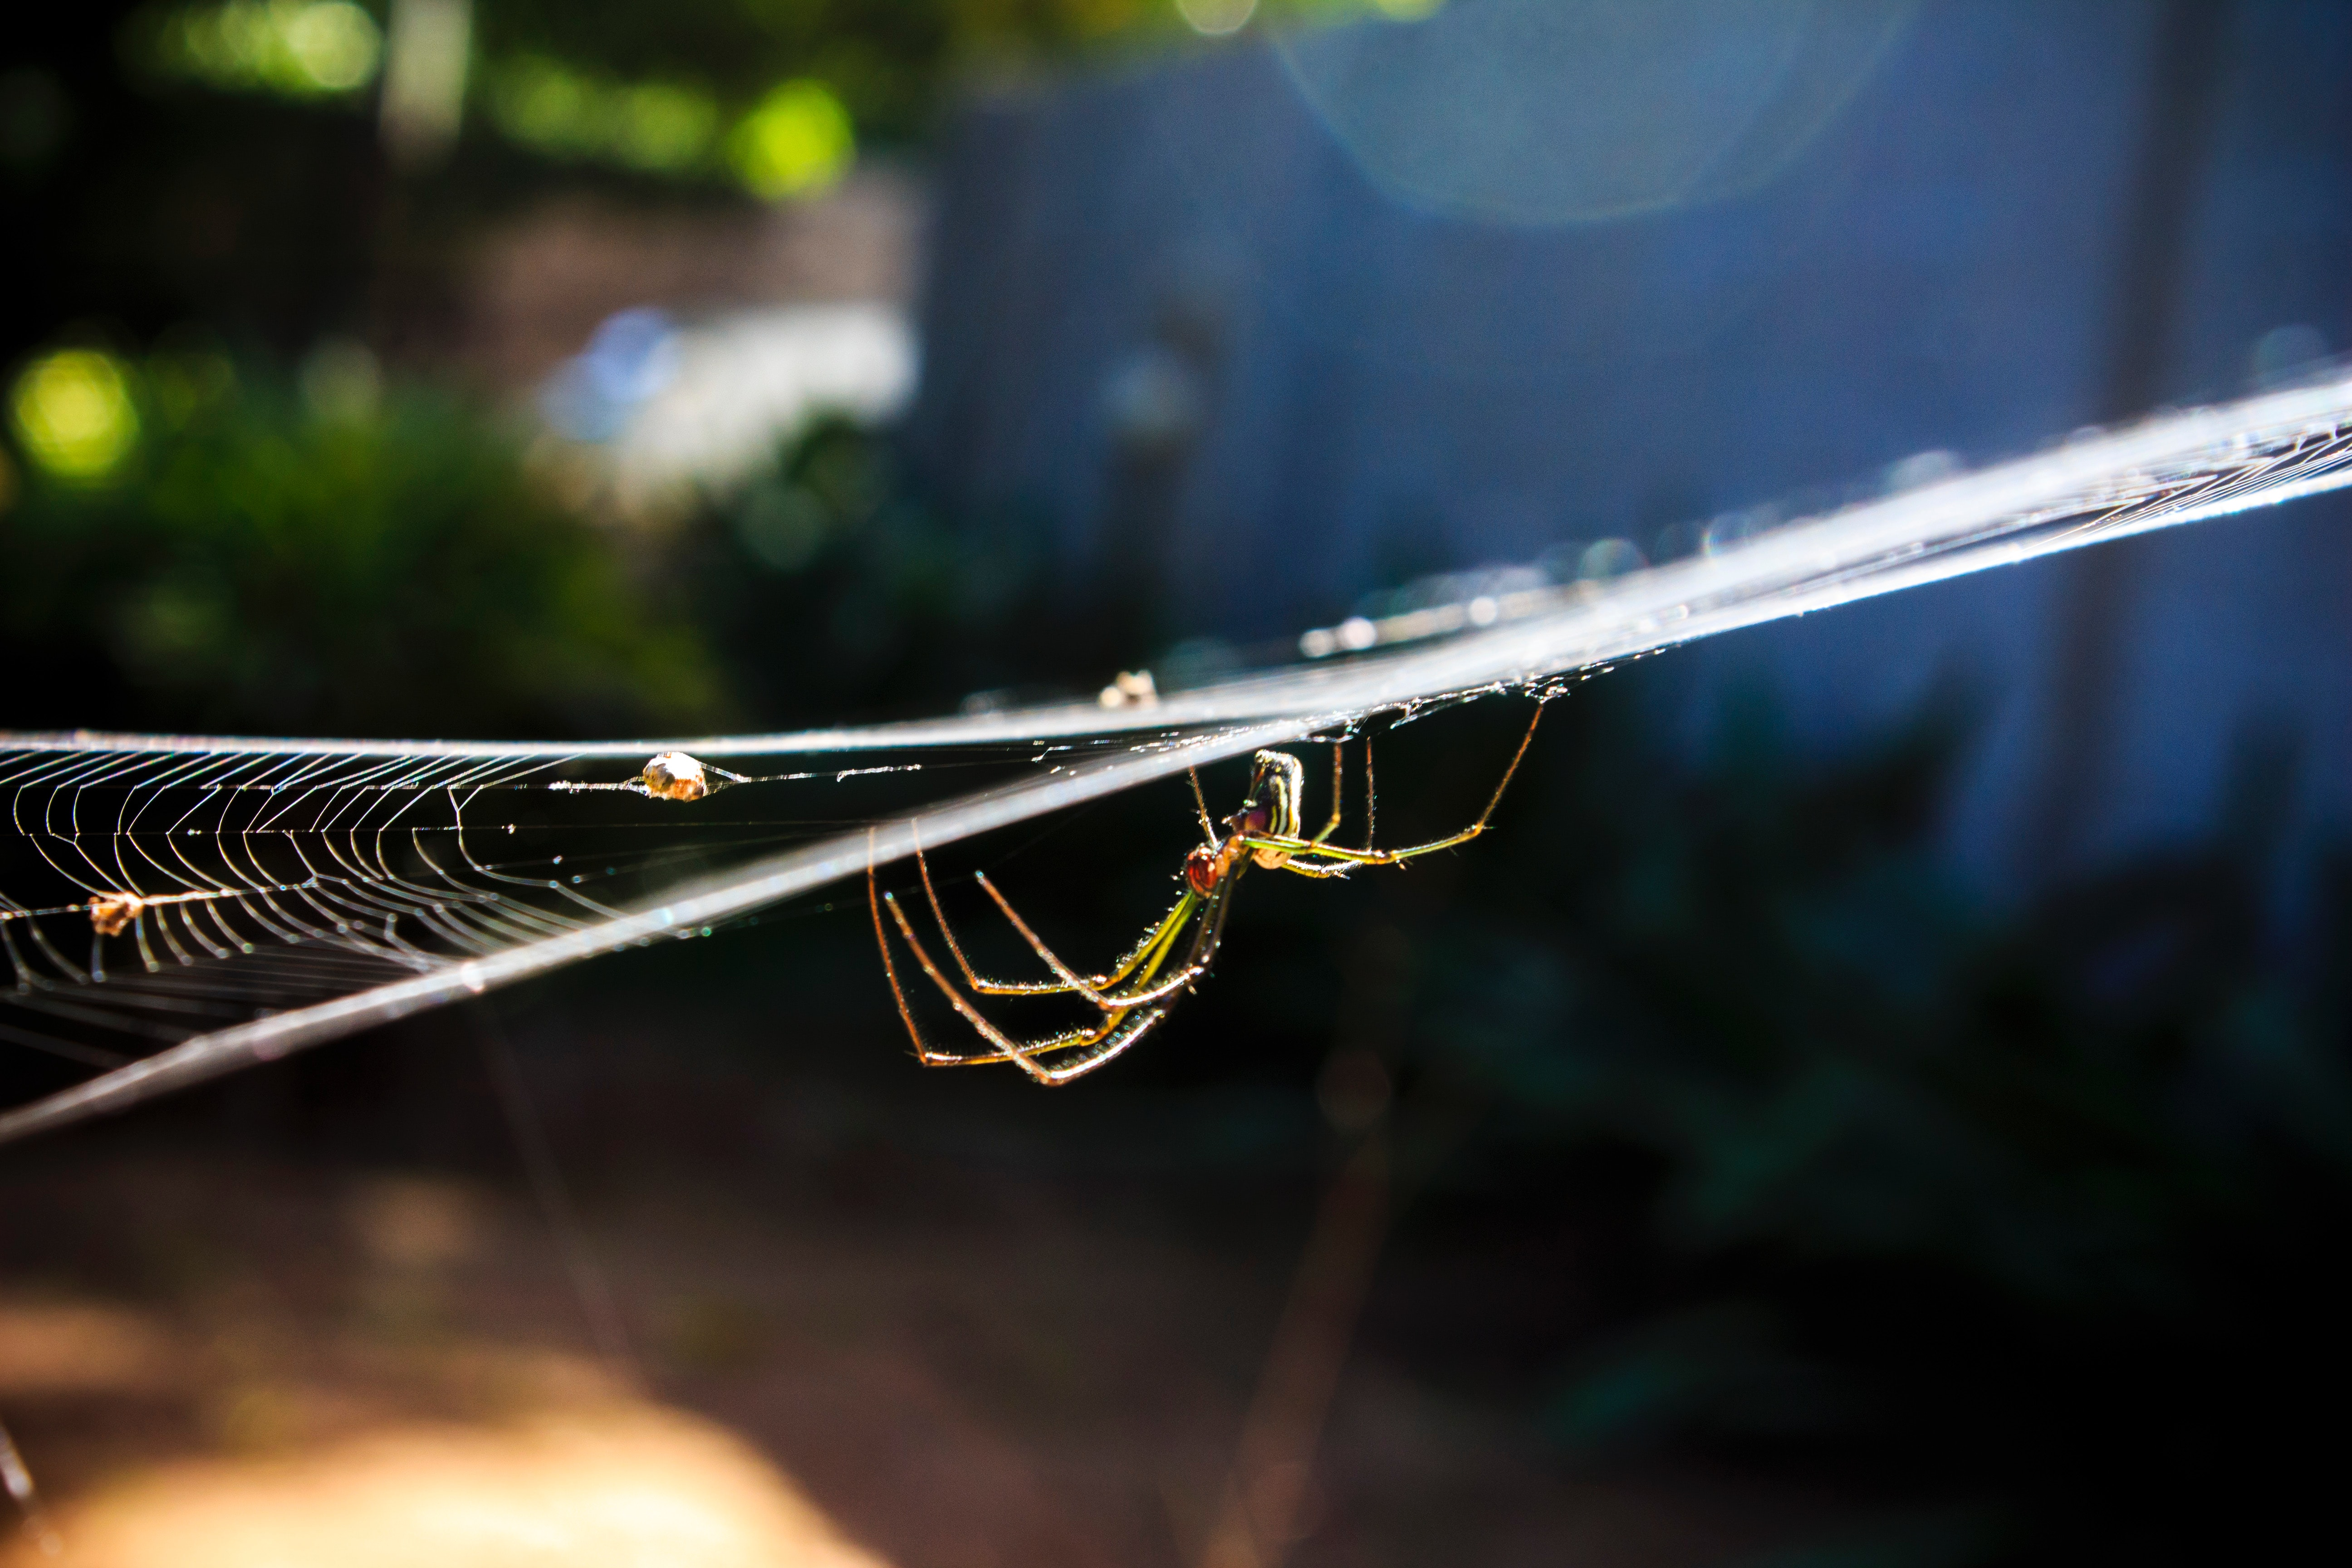 Garden Spider on Web in Close-up Photography, Animal, Macro photography, Web, Trap, HQ Photo